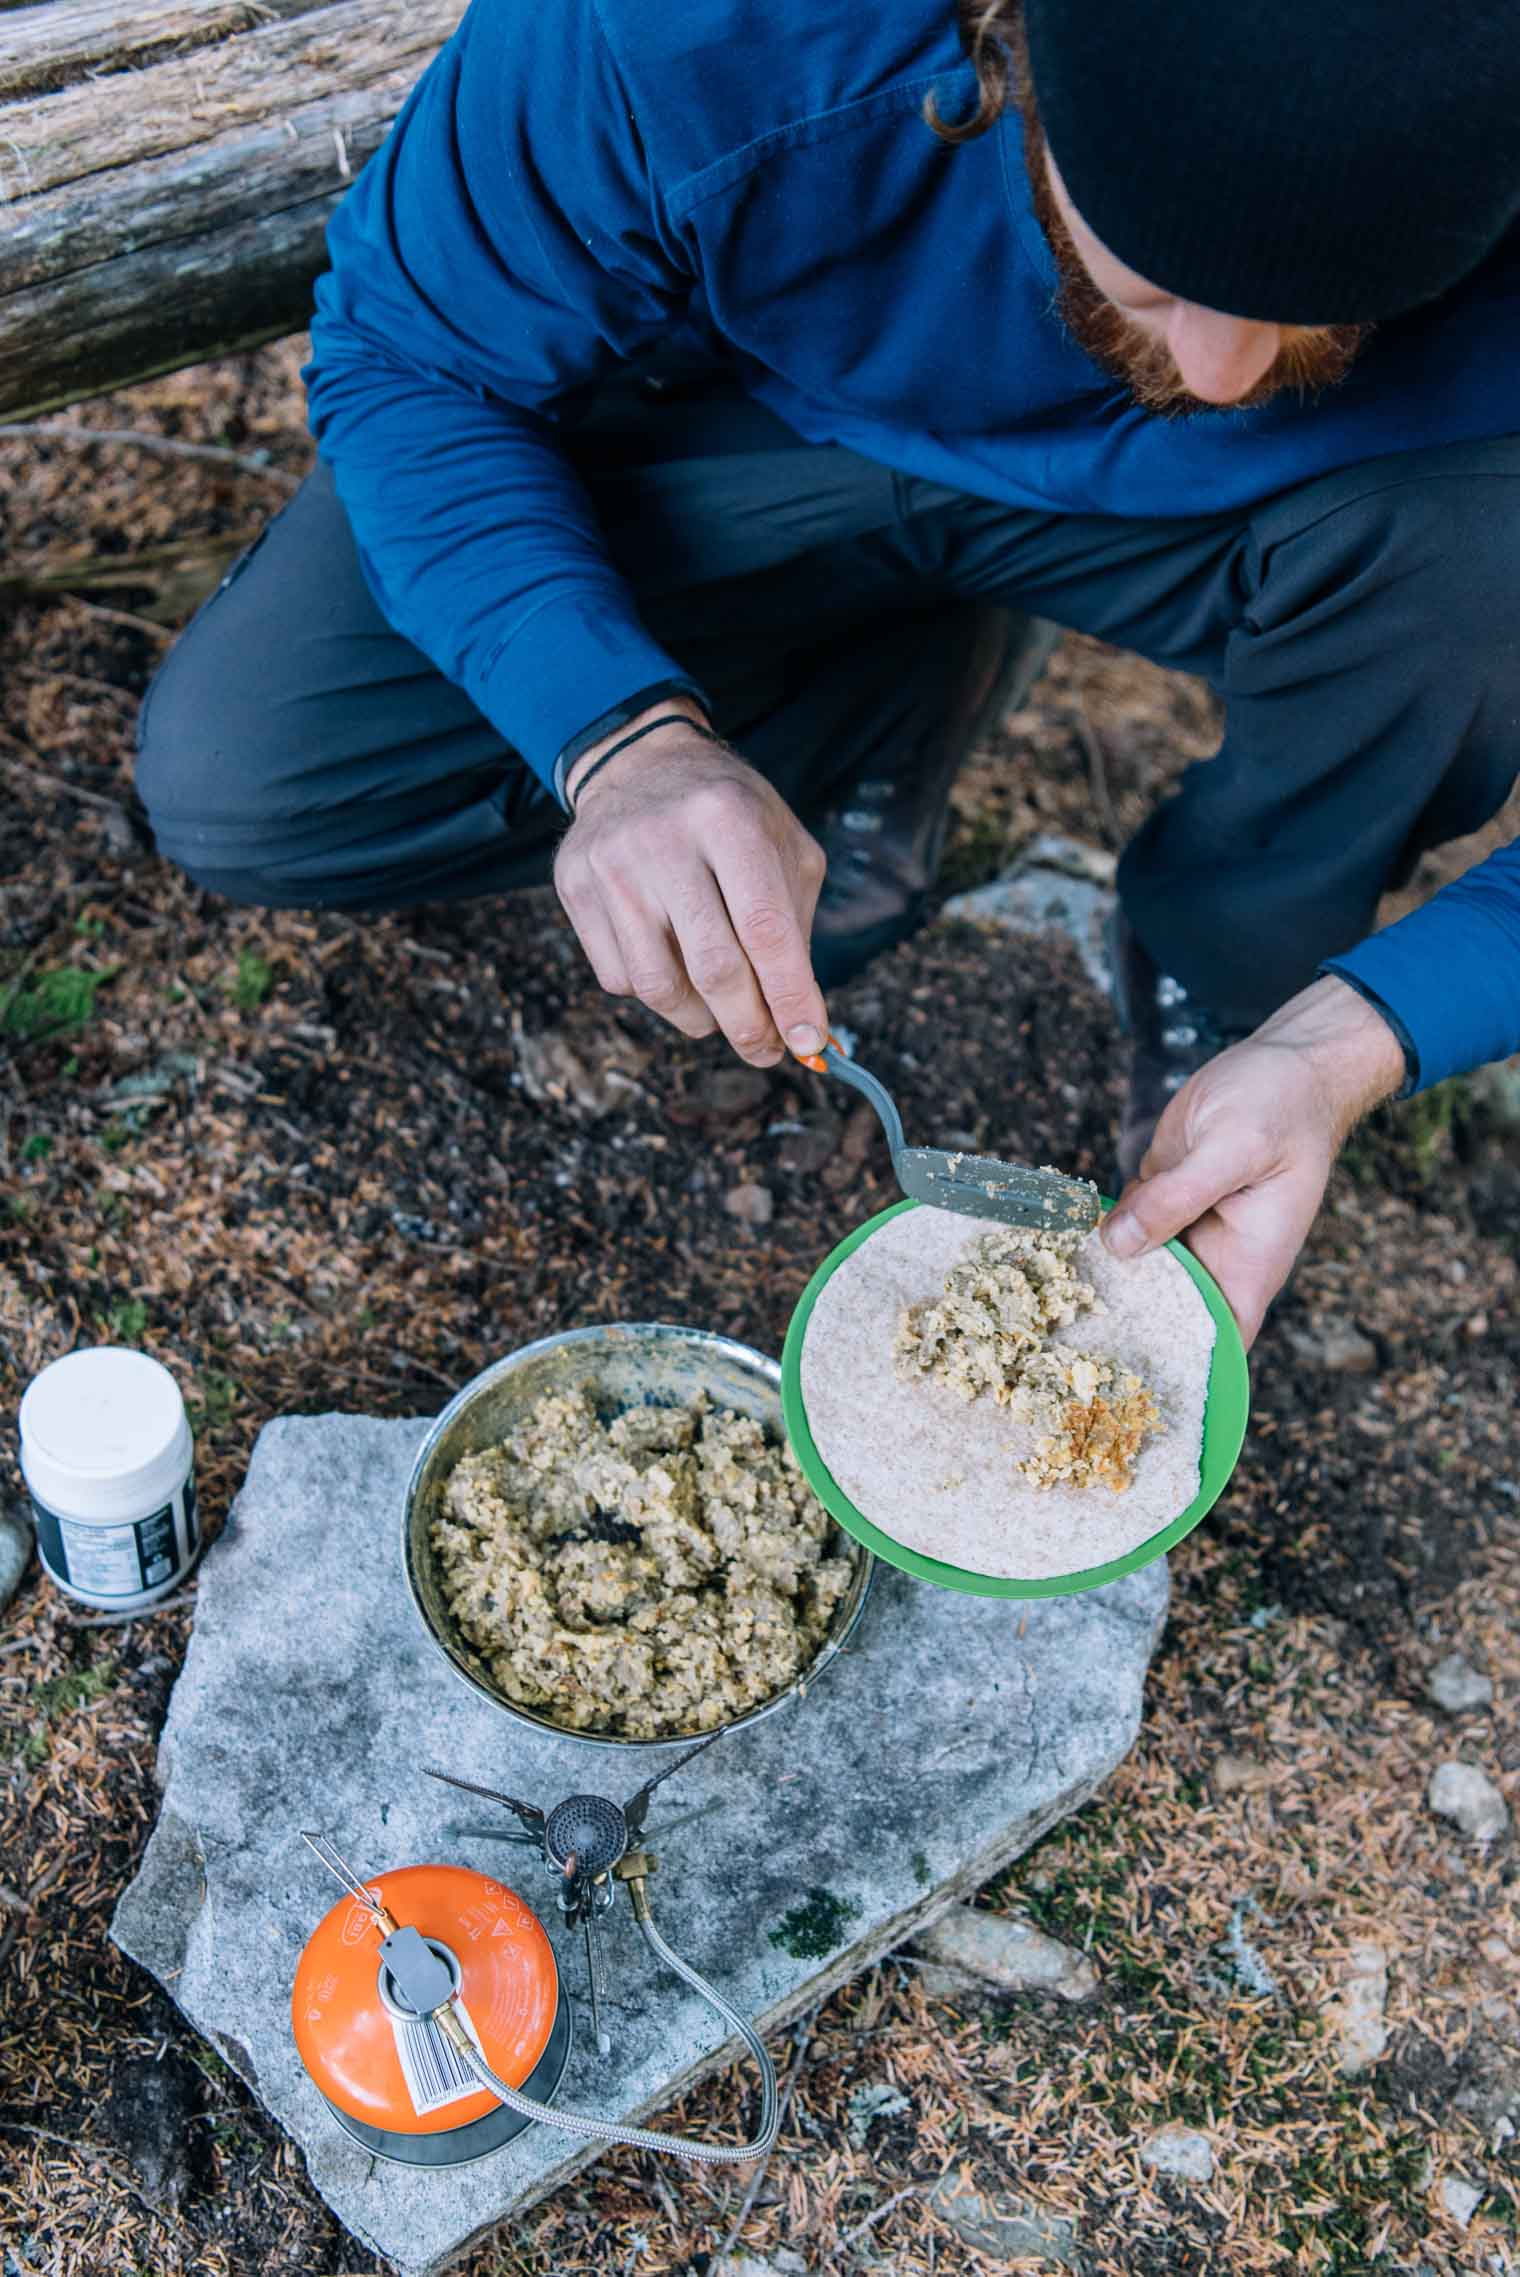 Best stove for motorcycle touring. A guide to the best compact kitchen gear for motorcycle camping and touring.